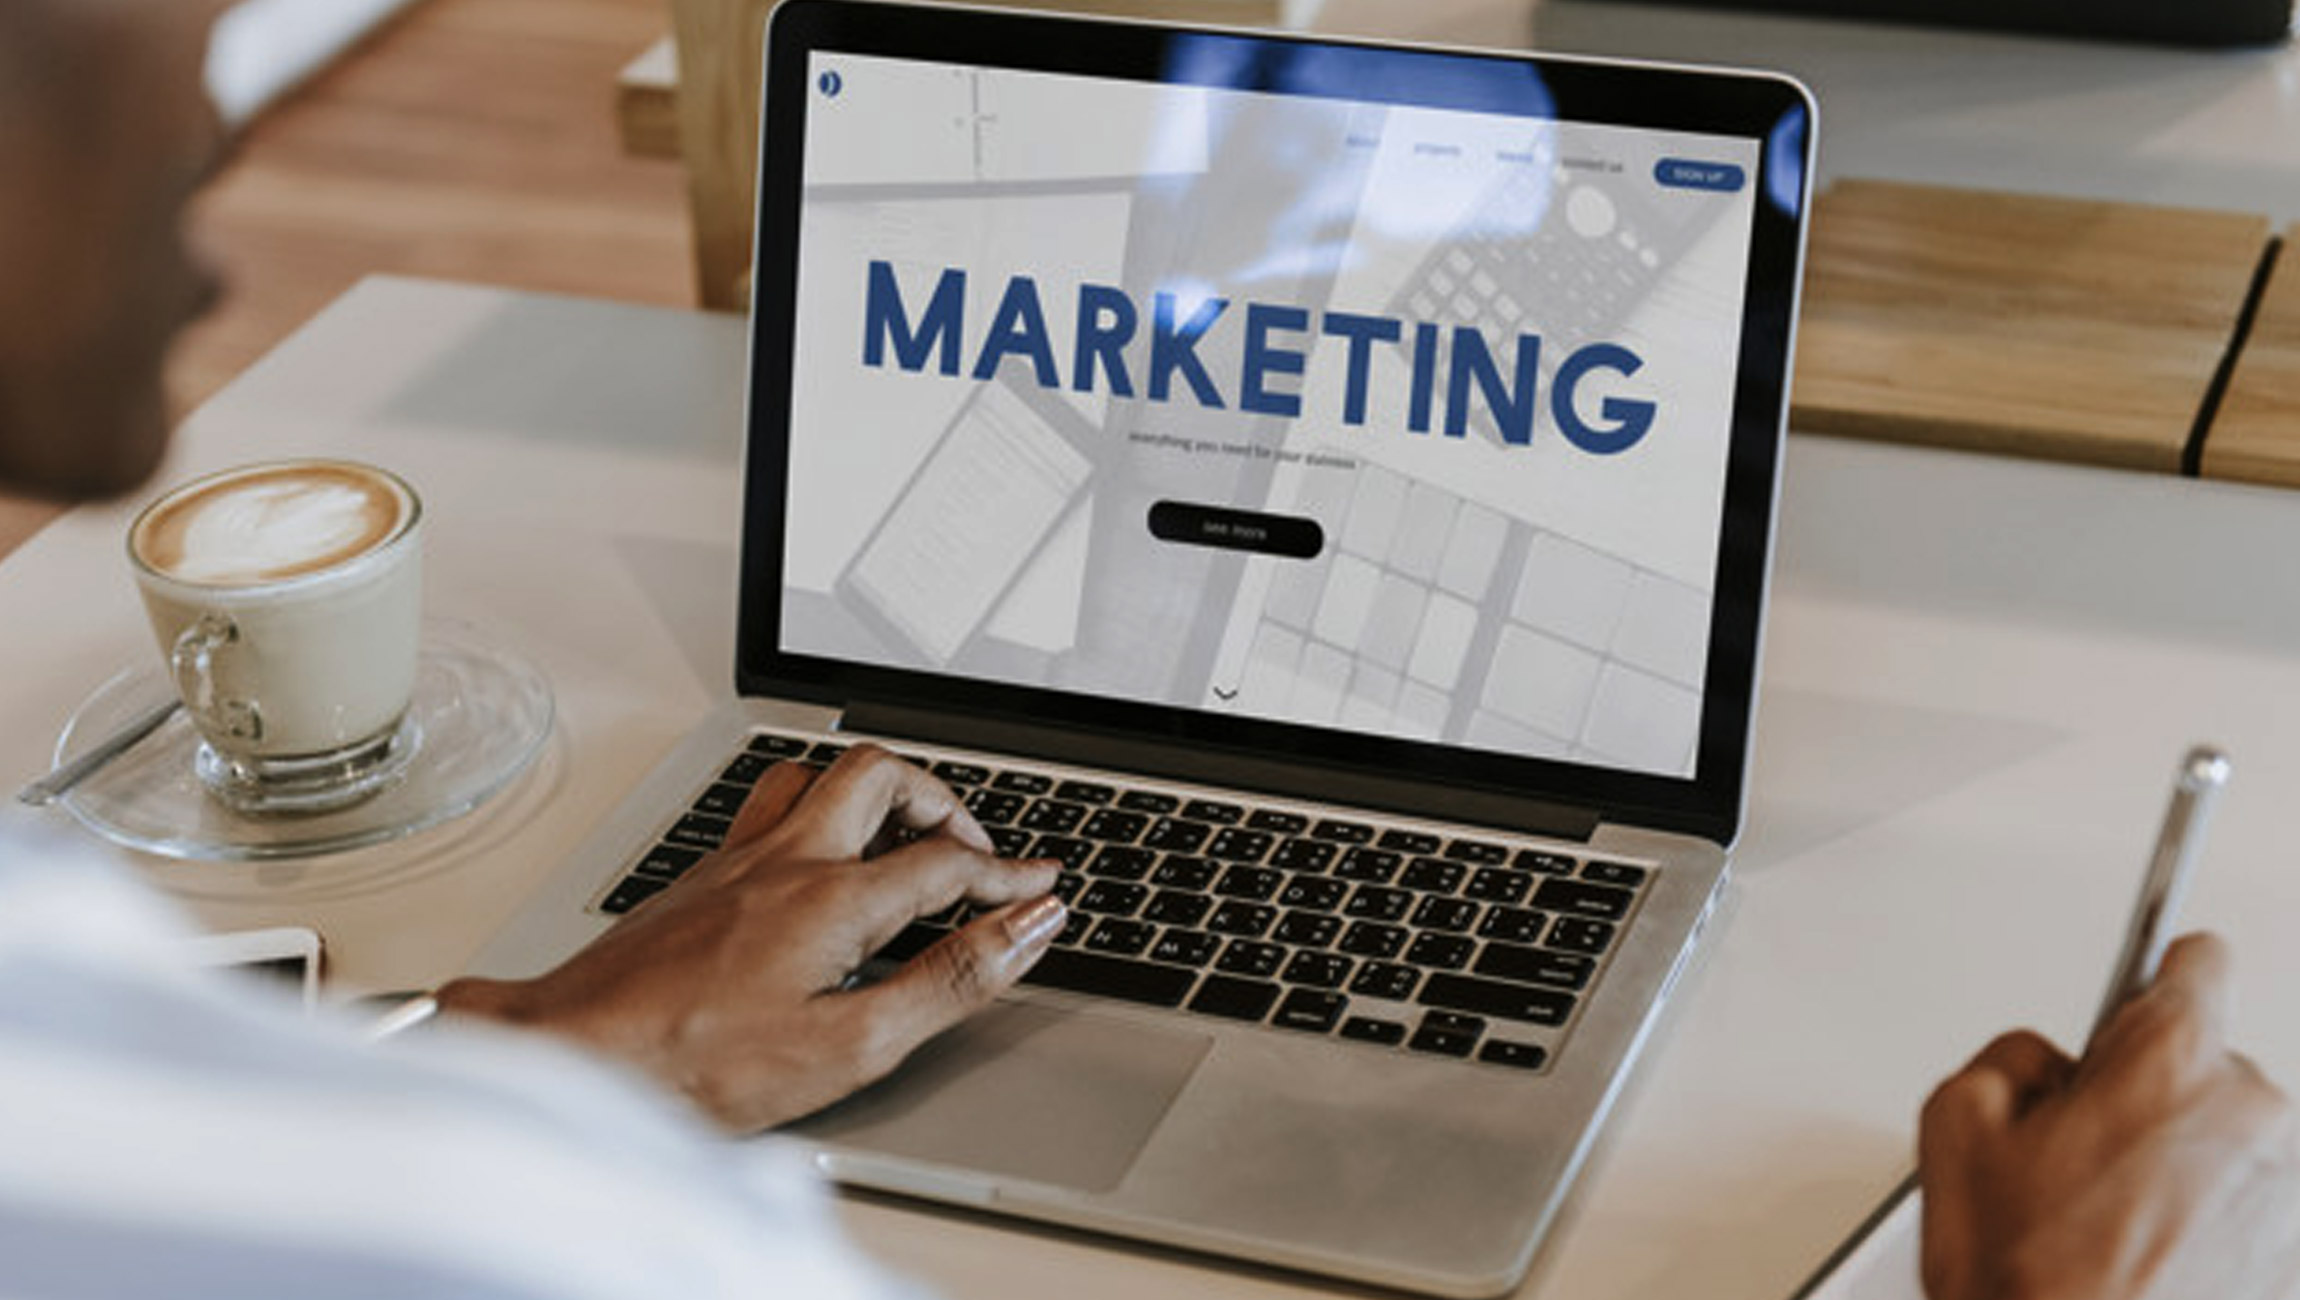 Internet Marketing Company, Fishbat, Shares 3 Helpful Tips For Remarketing Your Business